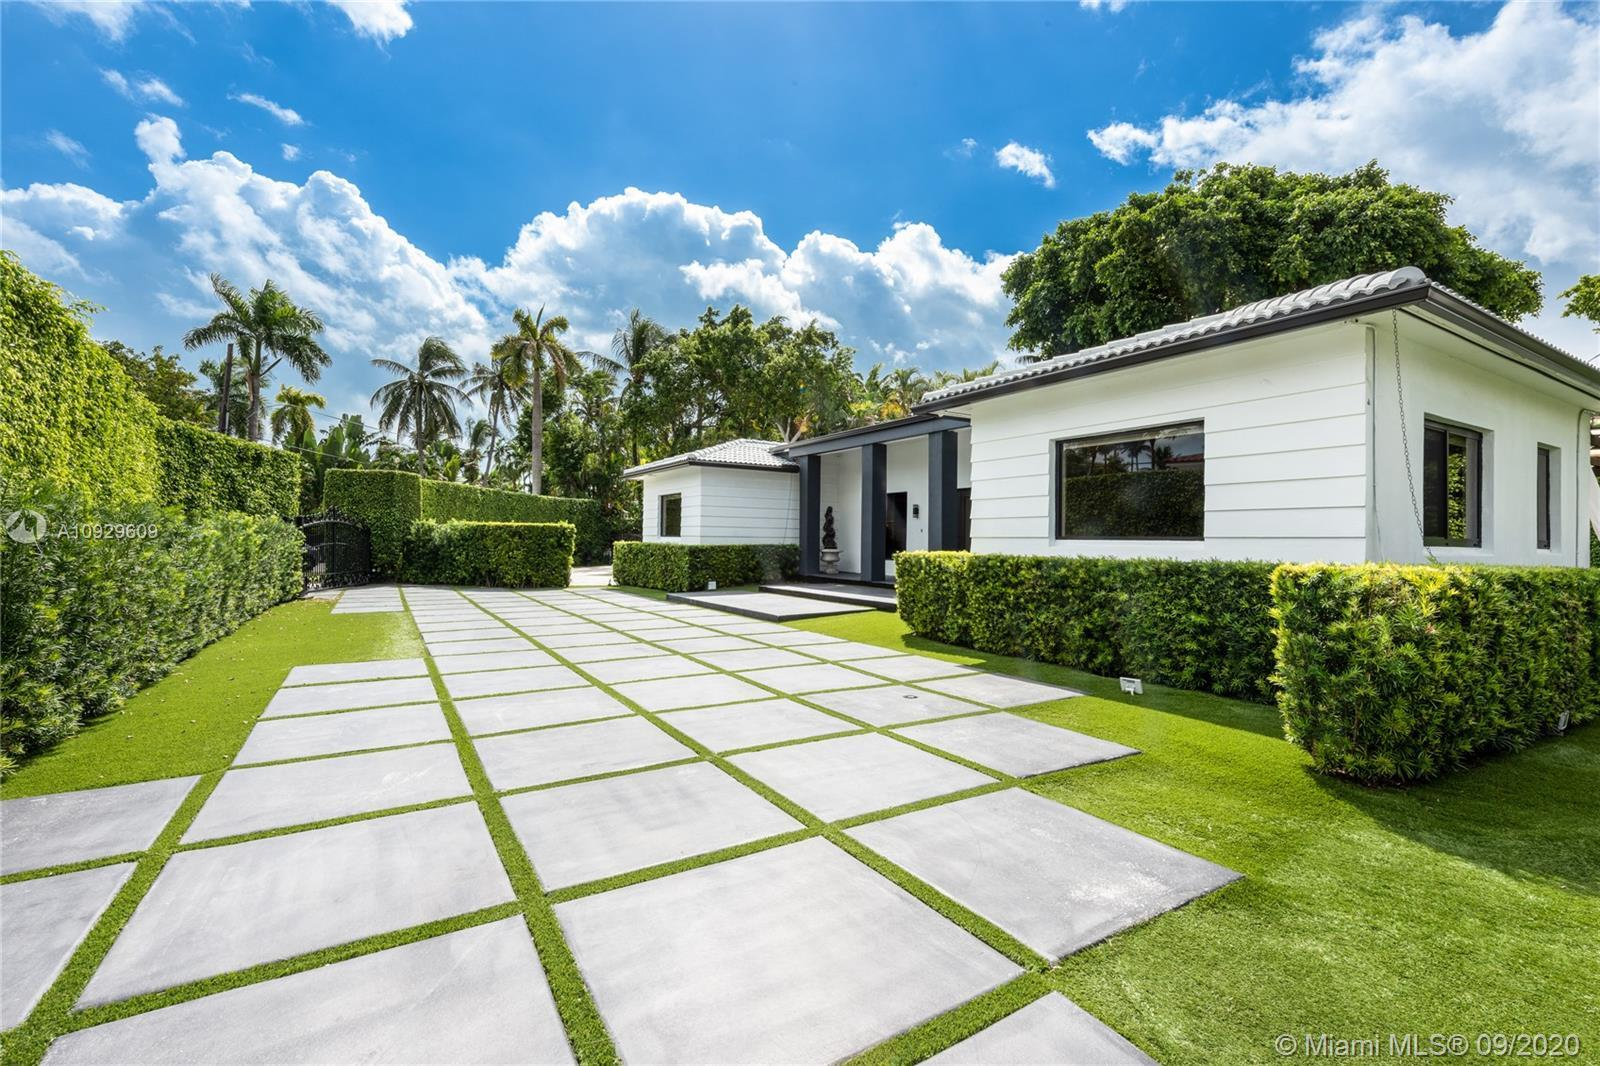 Fully renovated 4 bed/3.5 bath contemporary home located on gated Hibiscus island. This home embodie